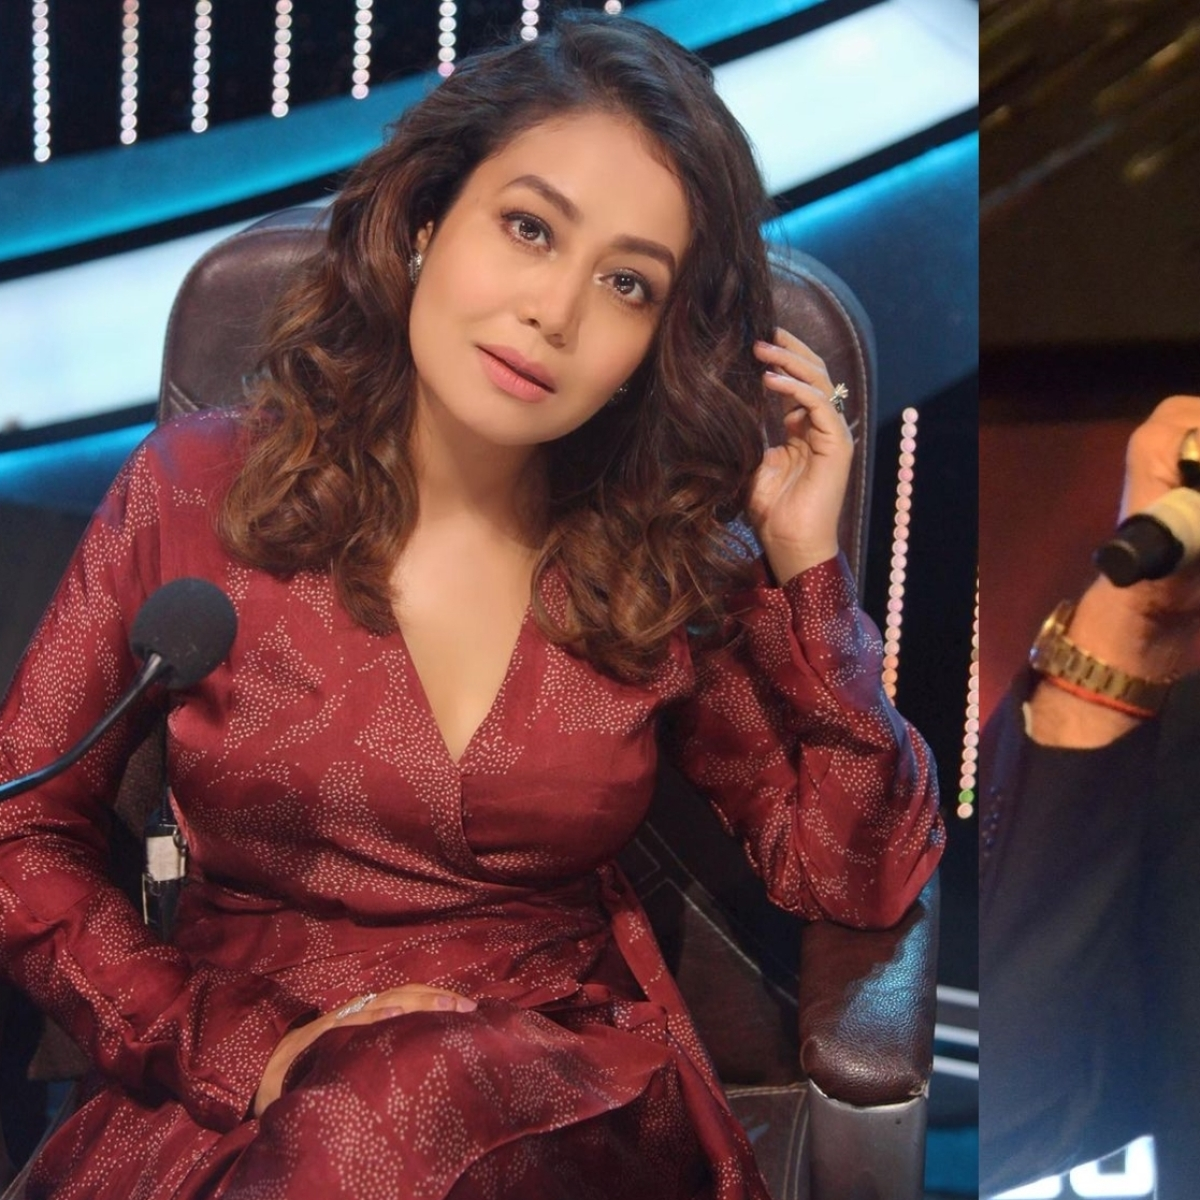 Watch: When a disappointed Anu Malik slapped himself after Neha Kakkar's singing during 'Indian Idol' audition